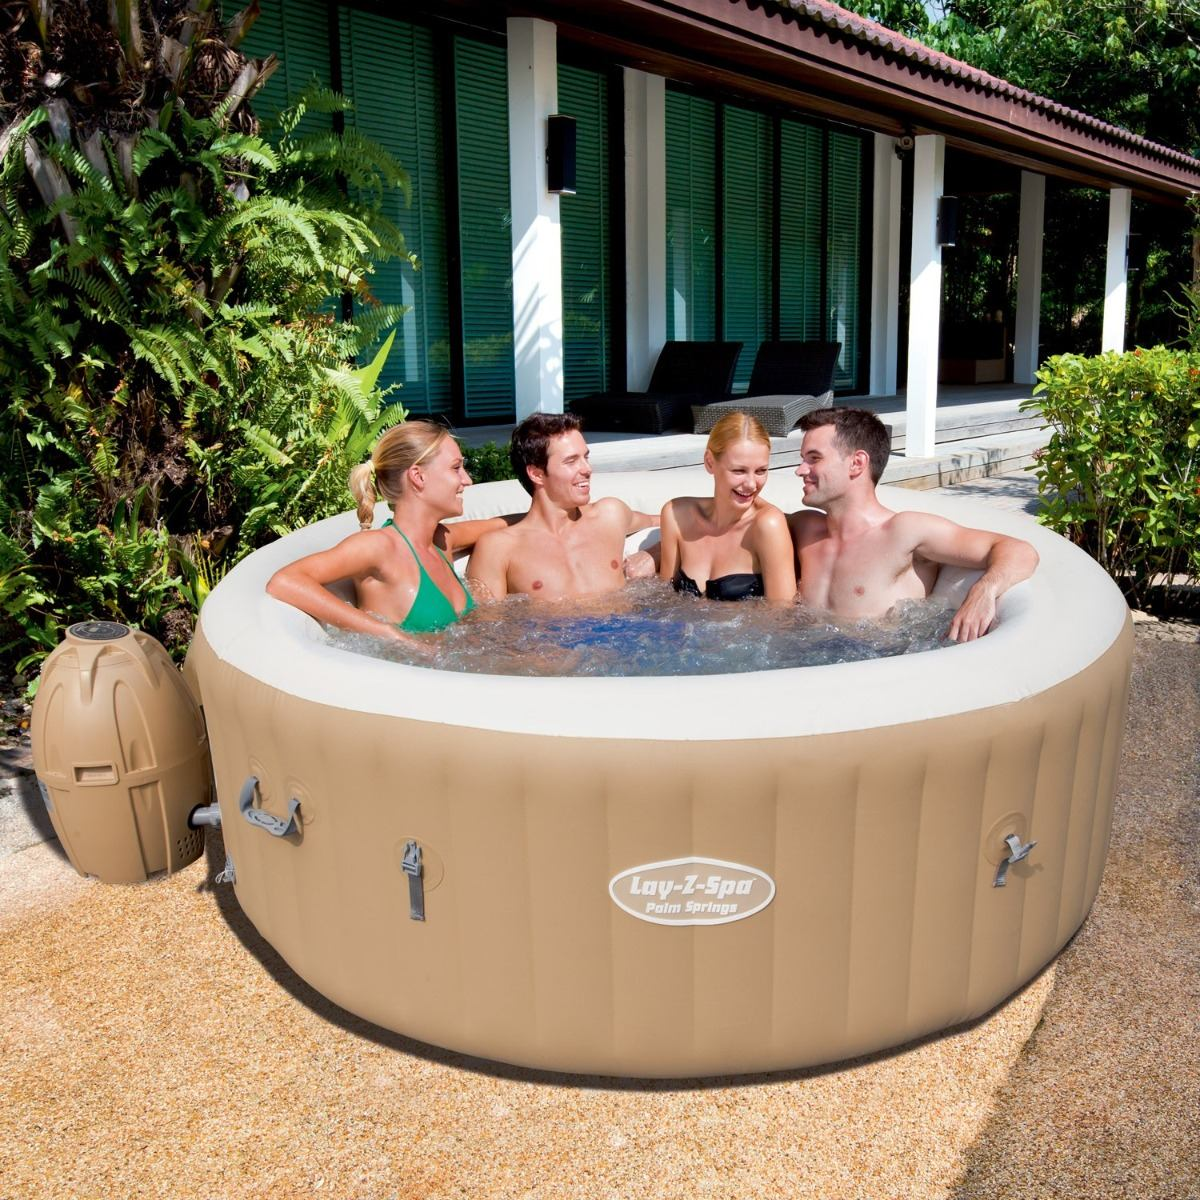 Jacuzzi Inflable Para 2 Personas.Spa Jacuzzi Inflable Bestway 4 6 Personas Hidromasaje 10